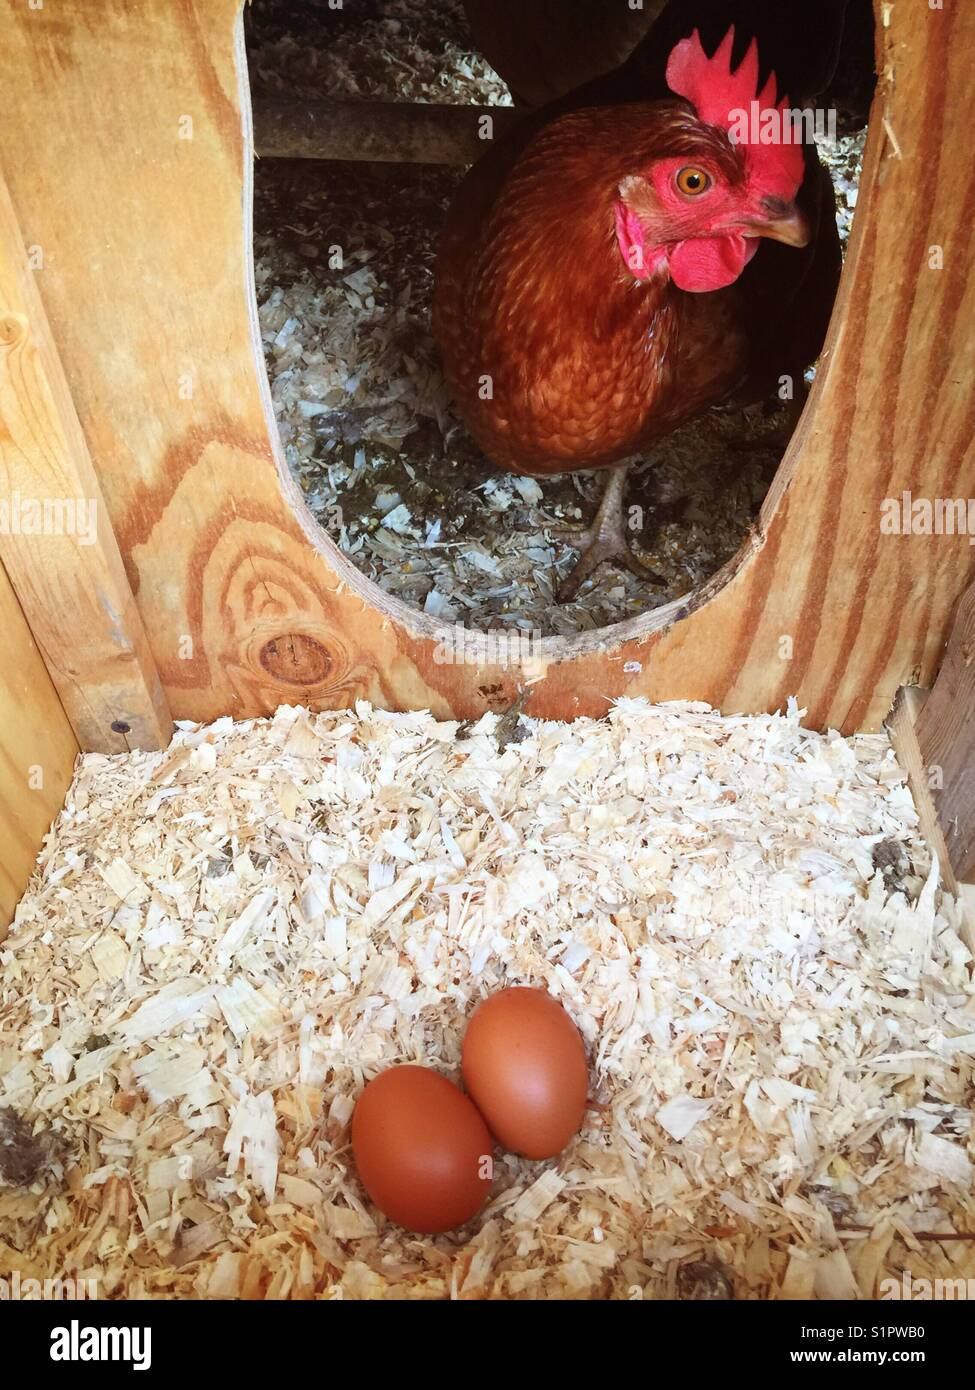 Two brown eggs in a nest box with Rhode Island Red chicken looking in. Stock Photo